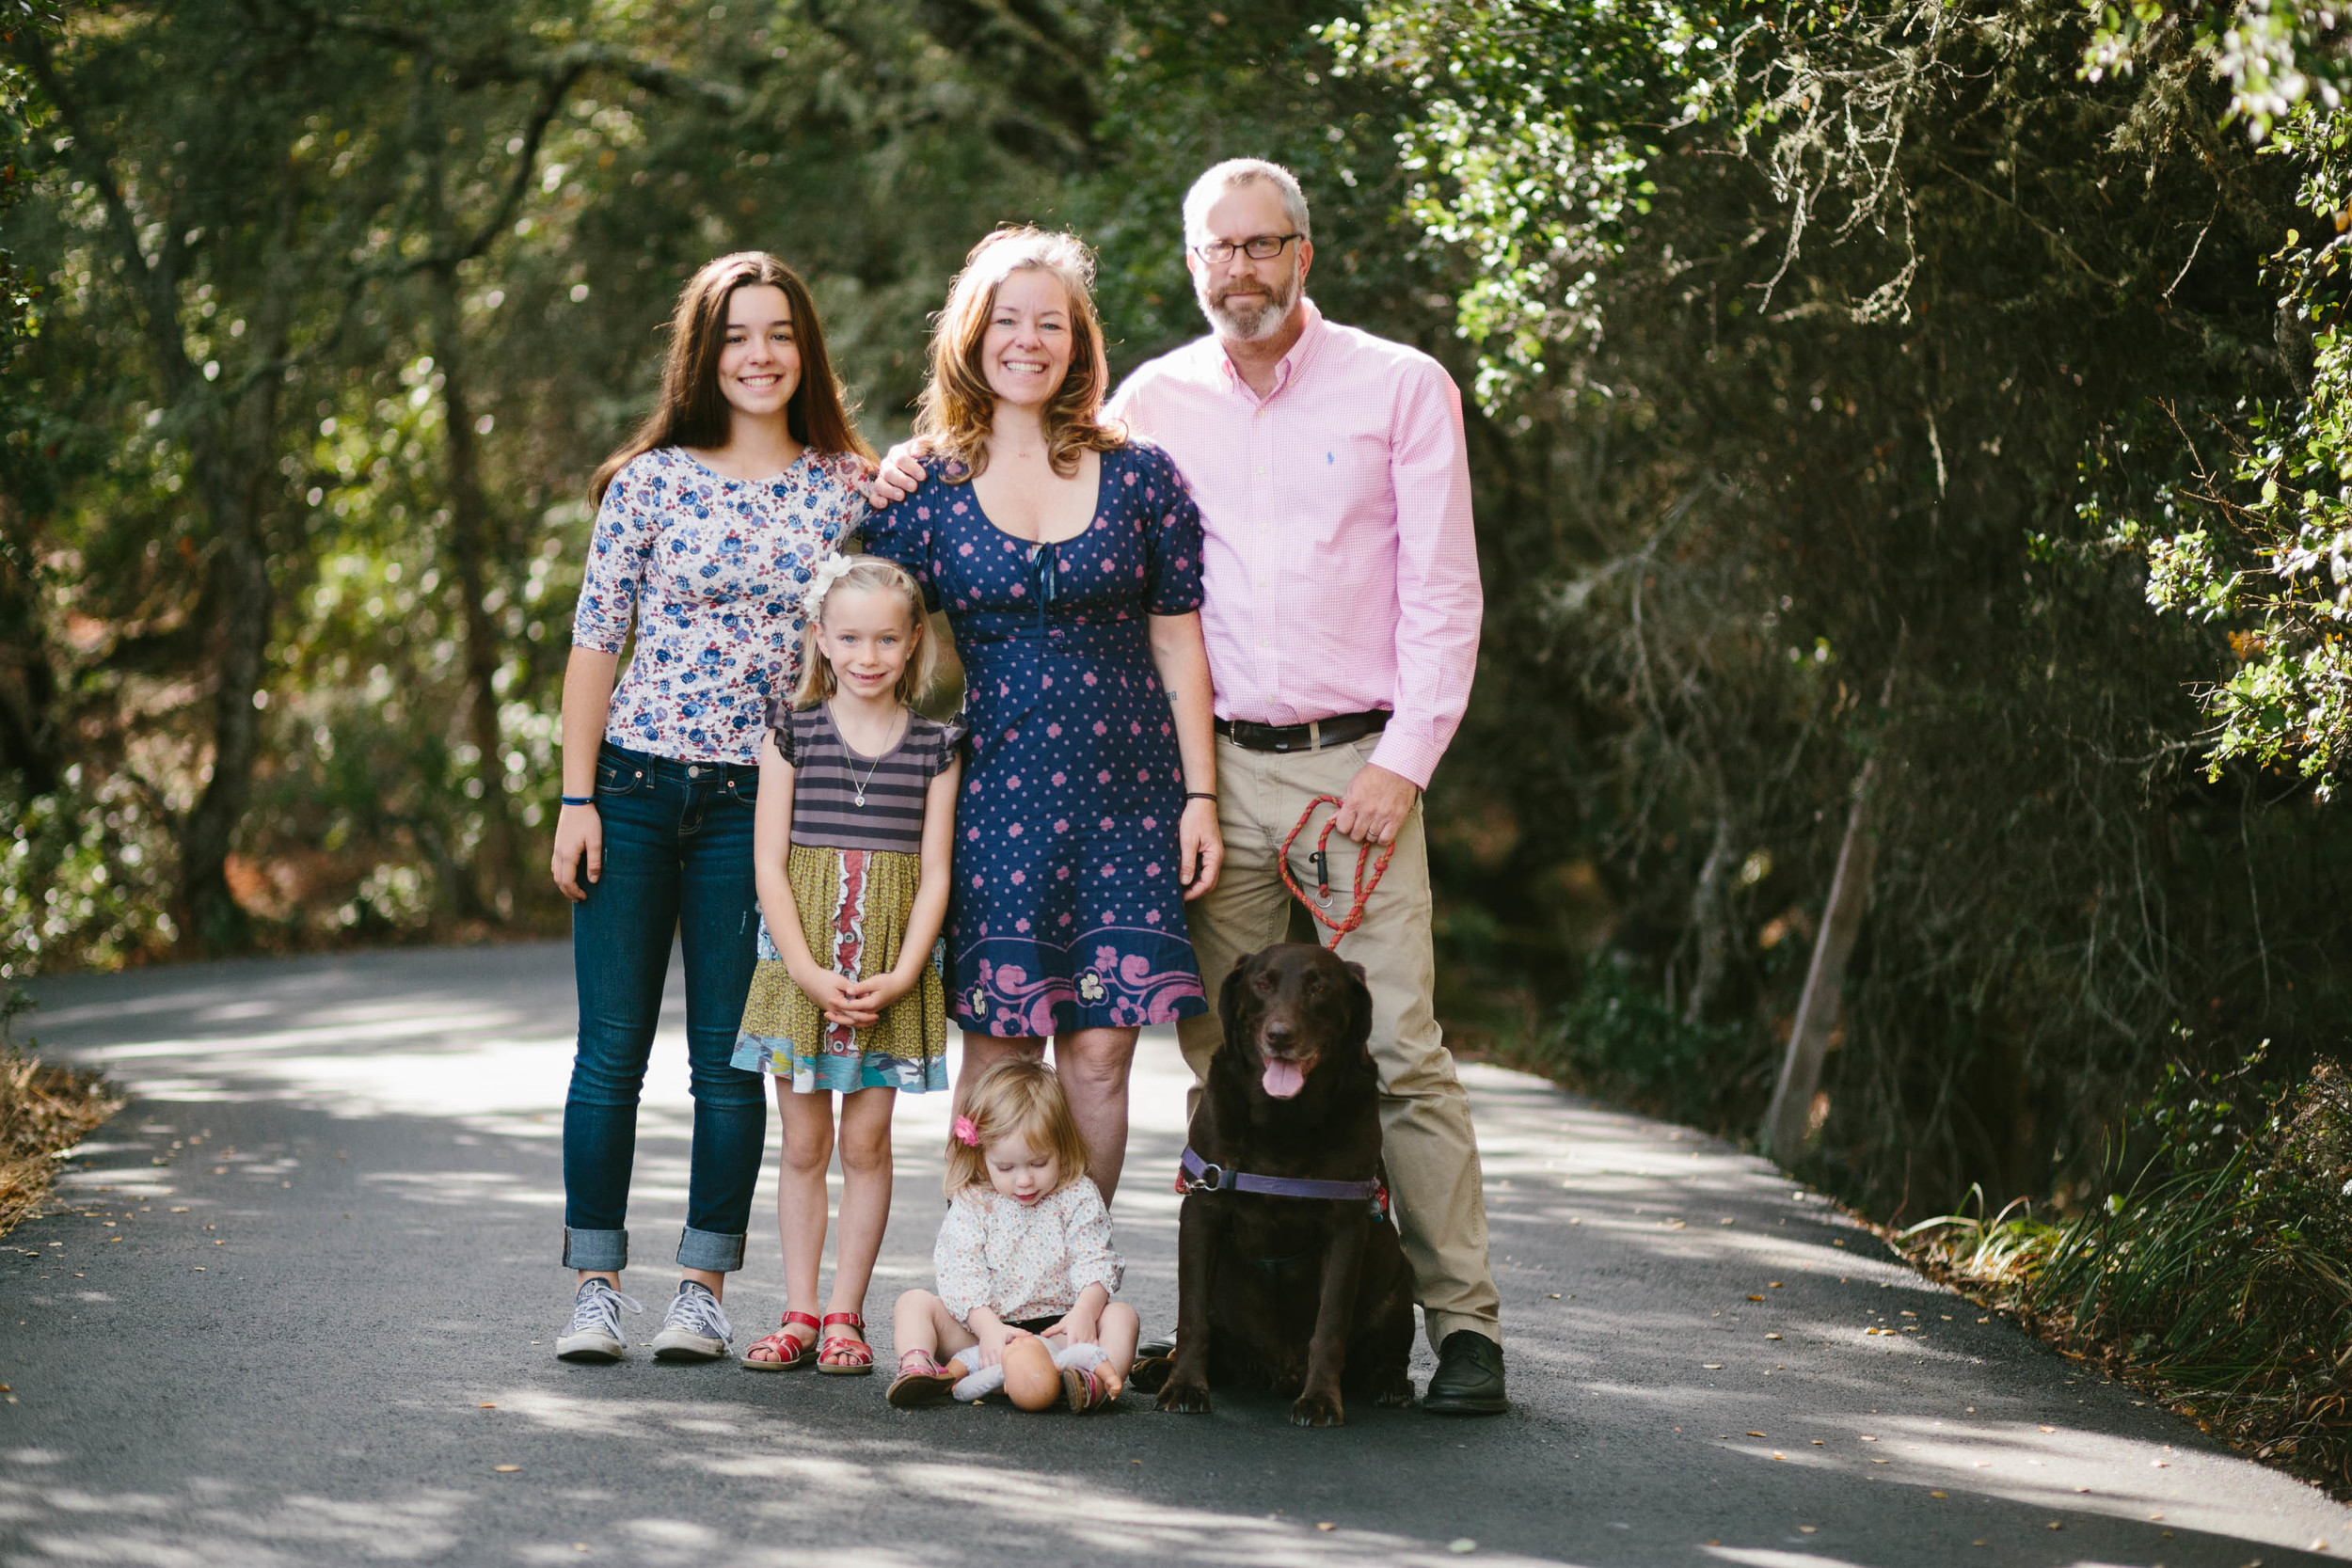 Fairfax Family Portraits by Anise LeAnn in Marin County, California.  Family of 5: 3 daughters and chocolate lab